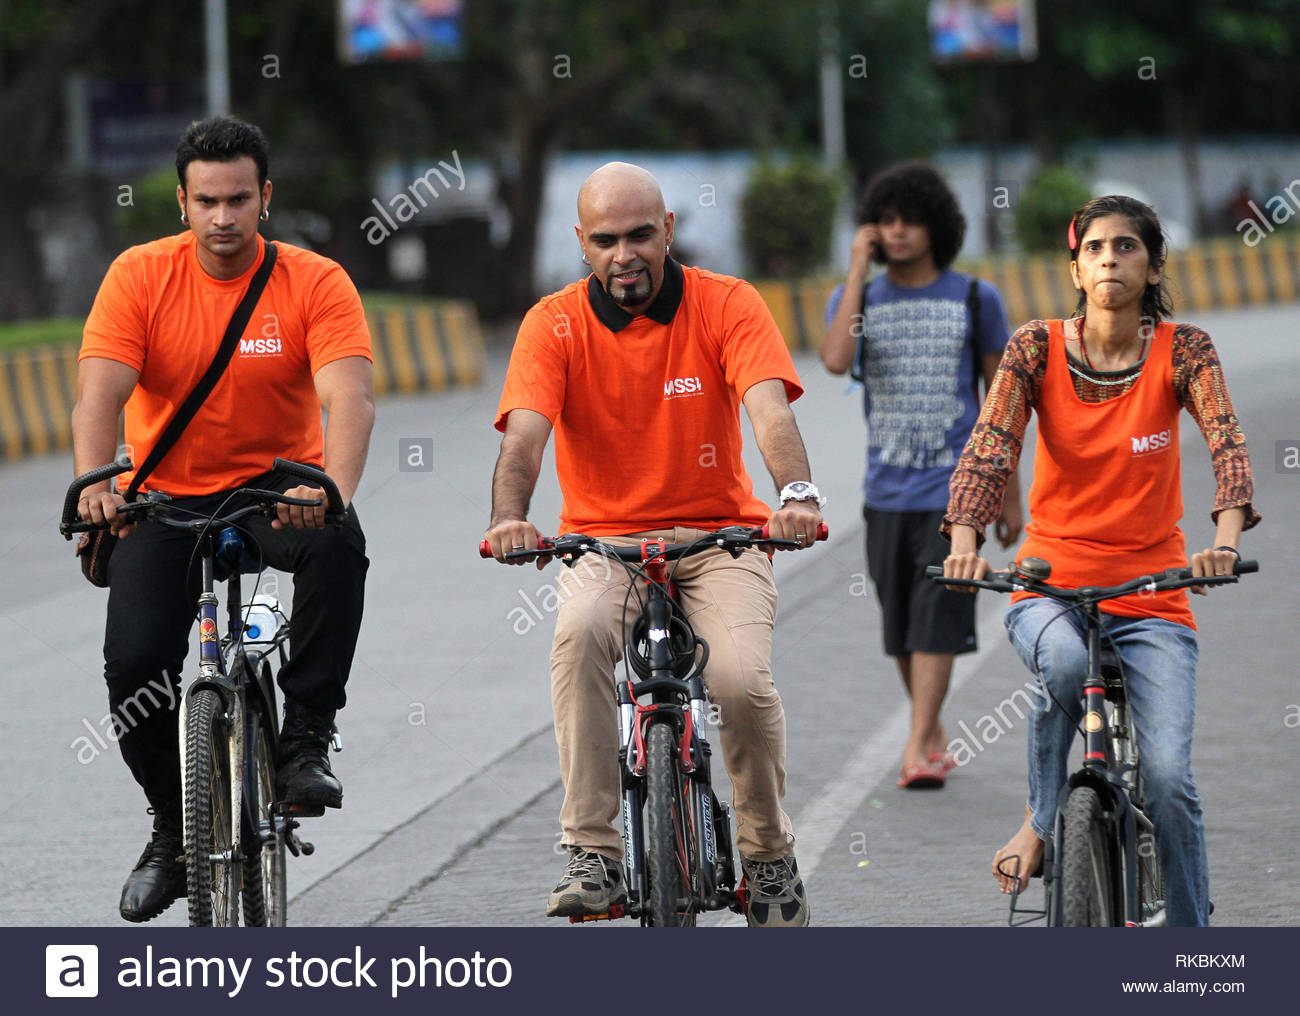 Raghu Ram, producer of Roadies, a popular Indian MTV reality show participates in a bicycle rally to raise awareness about Multiple Sclerosis in Mumbai, India on May 26, 2013. (Shailesh Andrade / SOLARIS IMAGES) - Stock Image